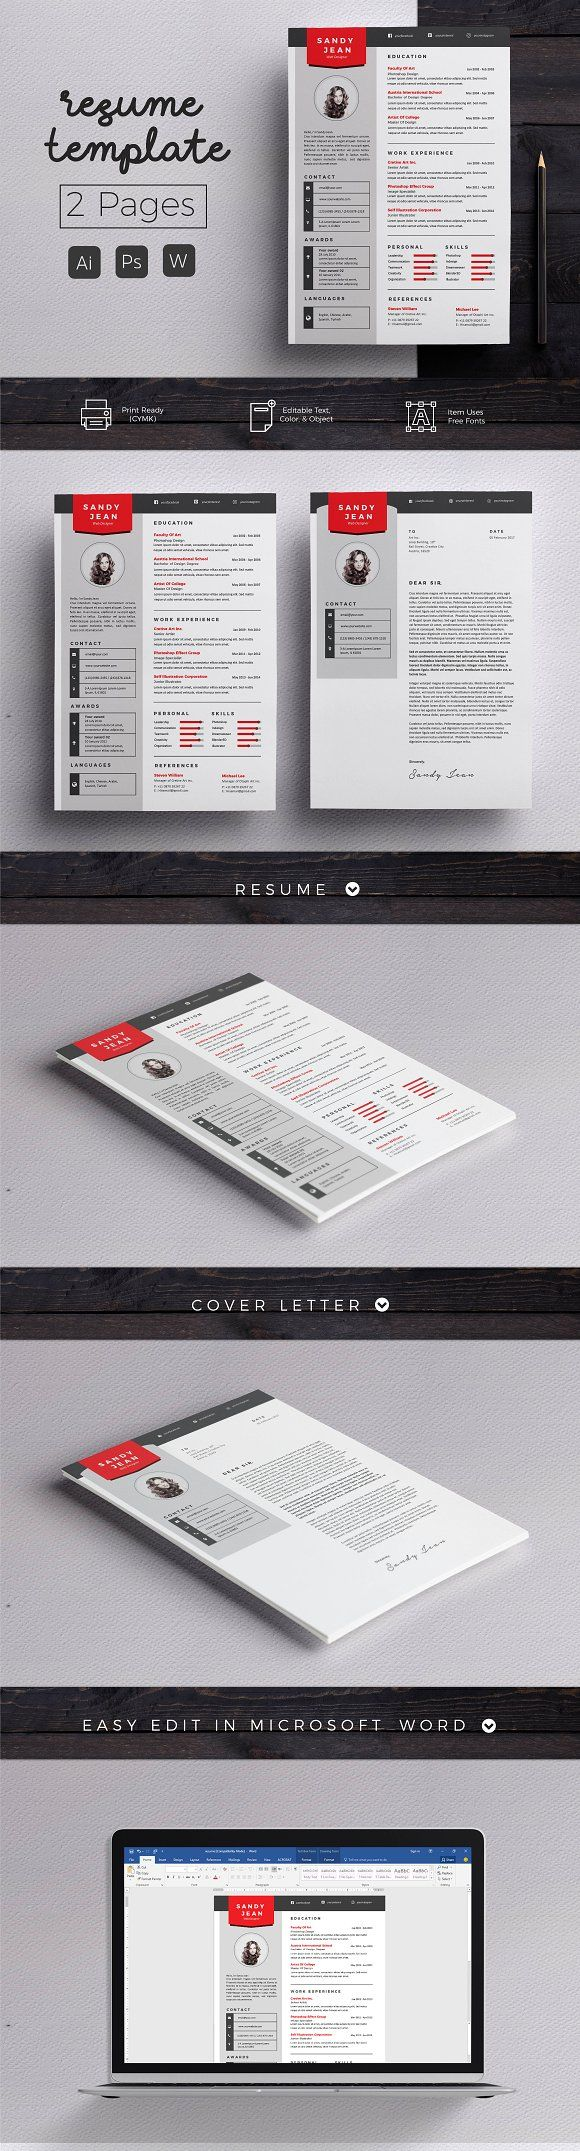 1077 best ? - Design - Resumes images on Pinterest | Resume design ...